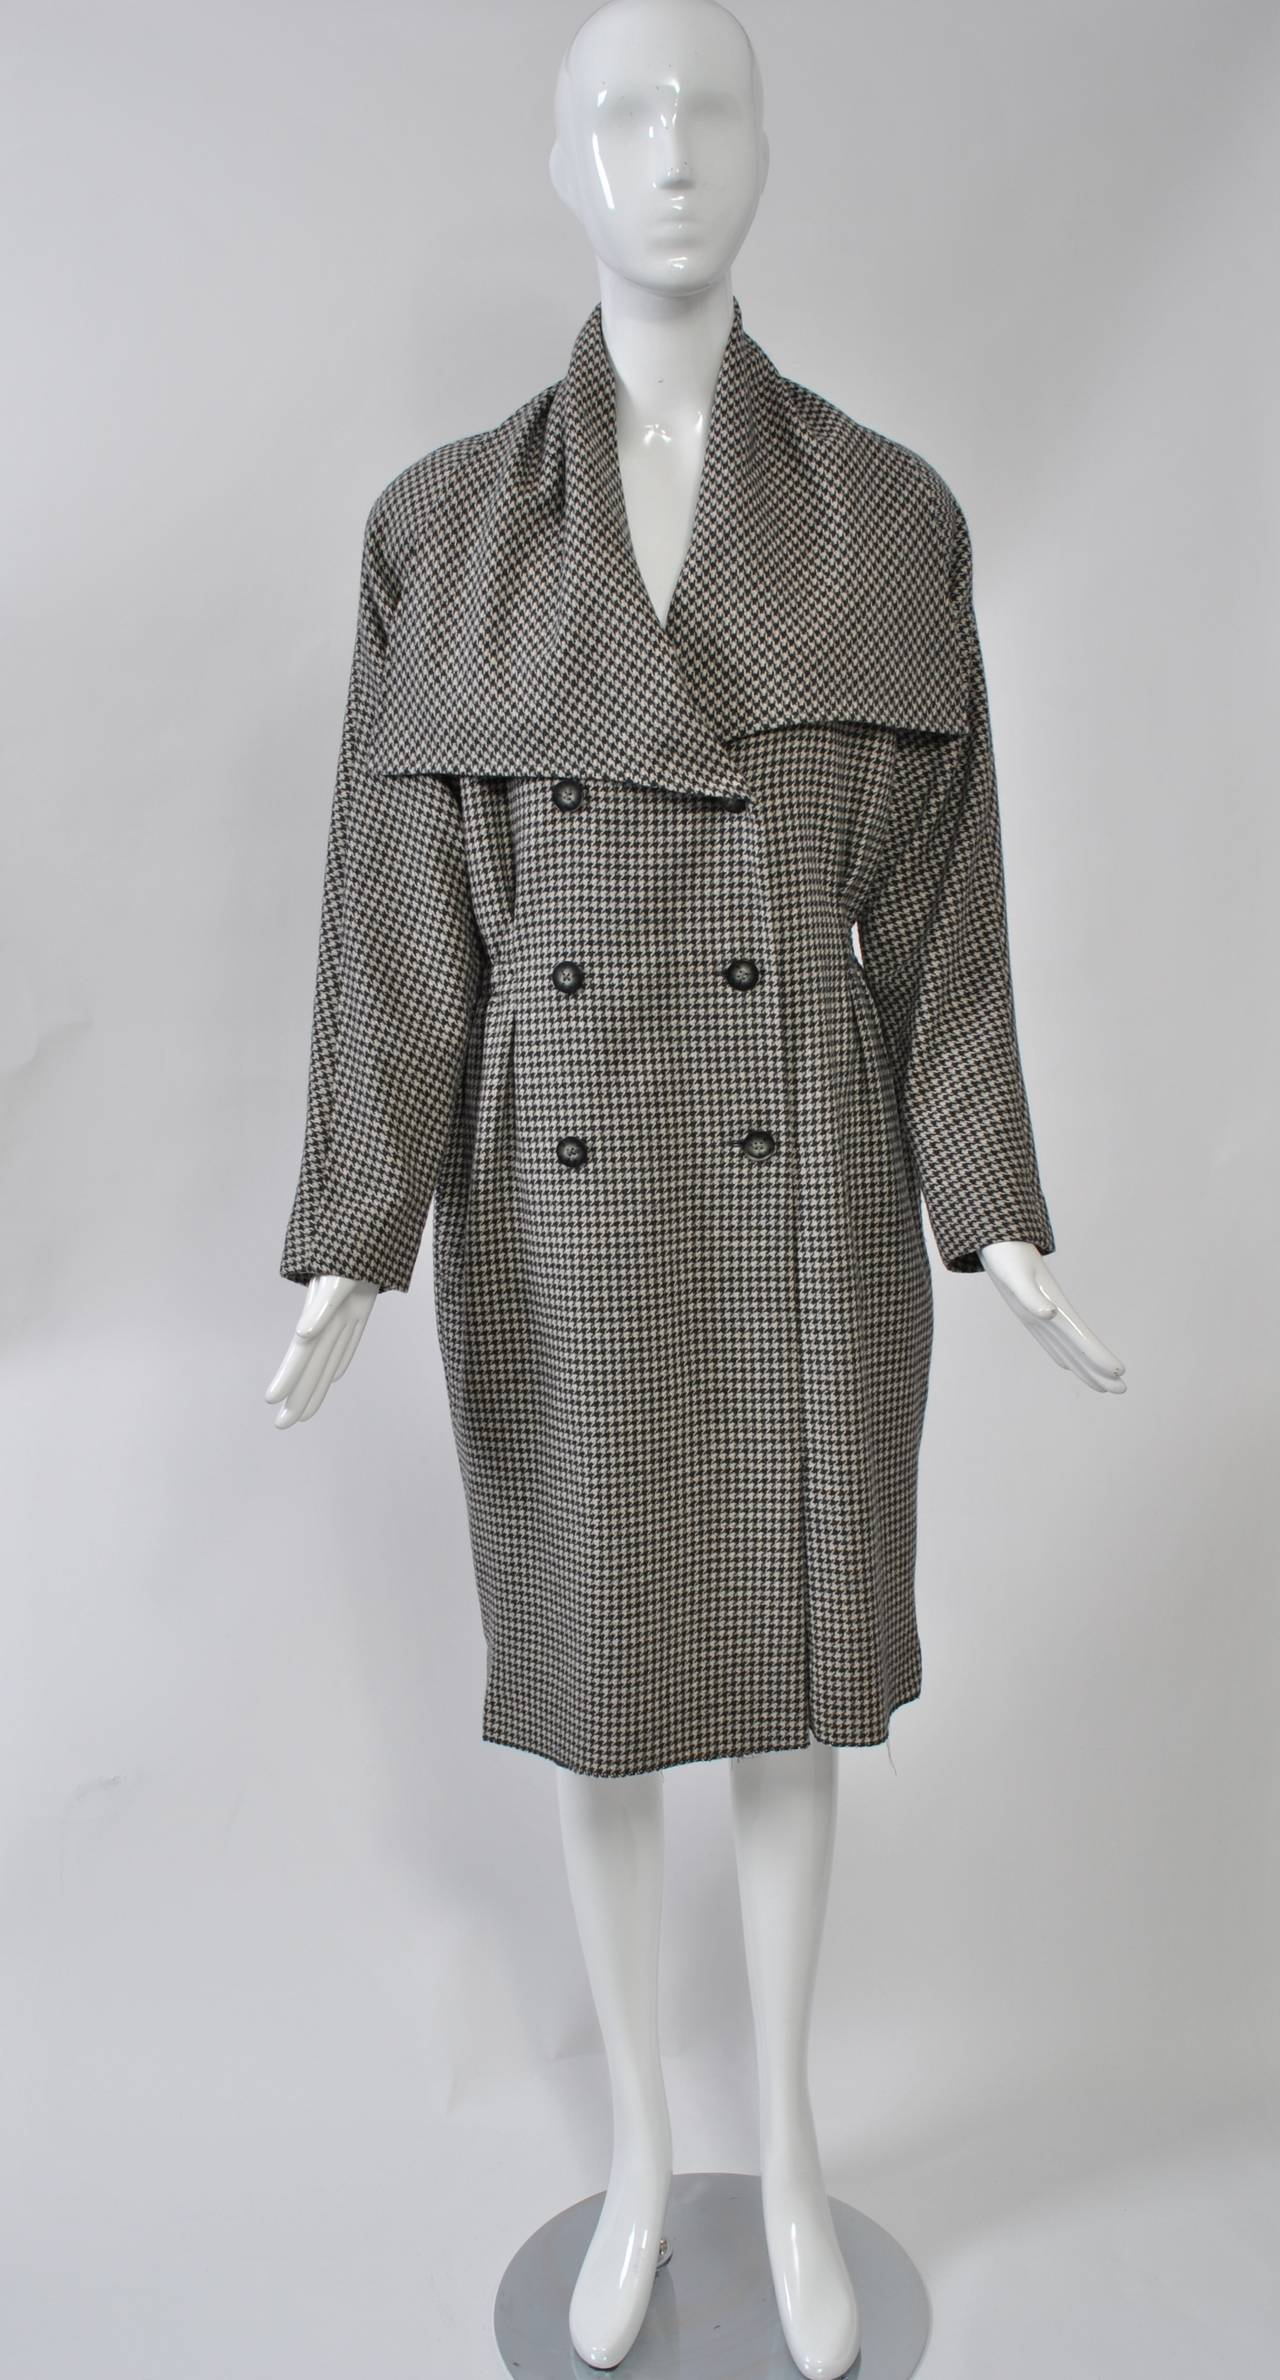 Tiktiner gray check oversized, double-breasted coatdress with a nipped waist, large collar, and raglan sleeves. Soft feel to the fabric. Looks great belted.